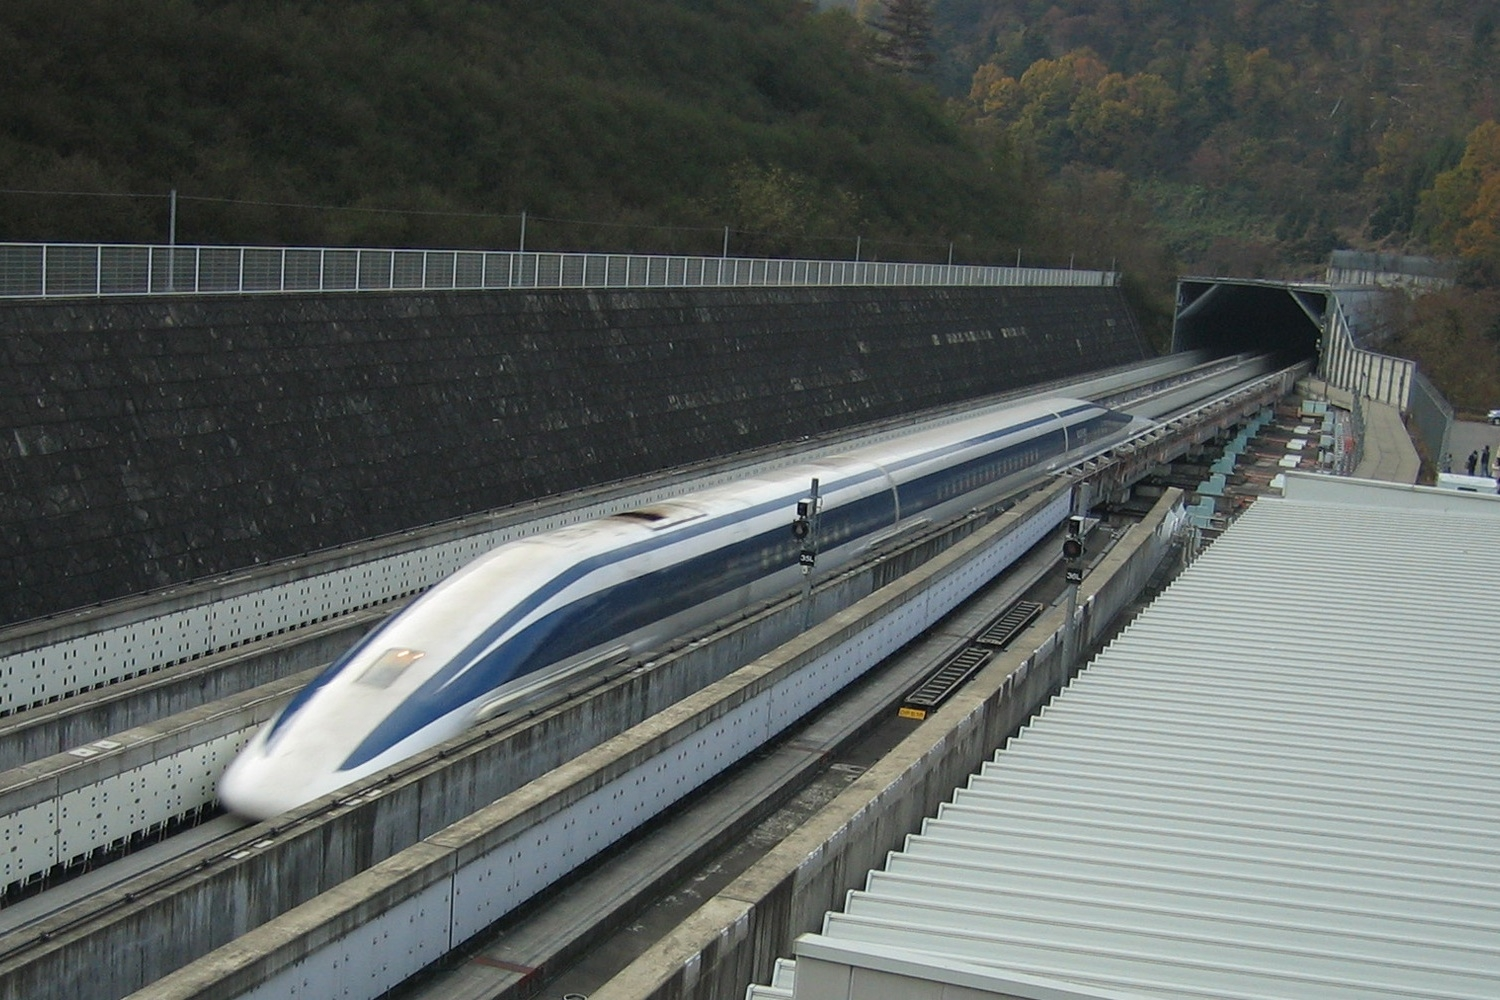 This Magnetic Train Is The Fastest In the World